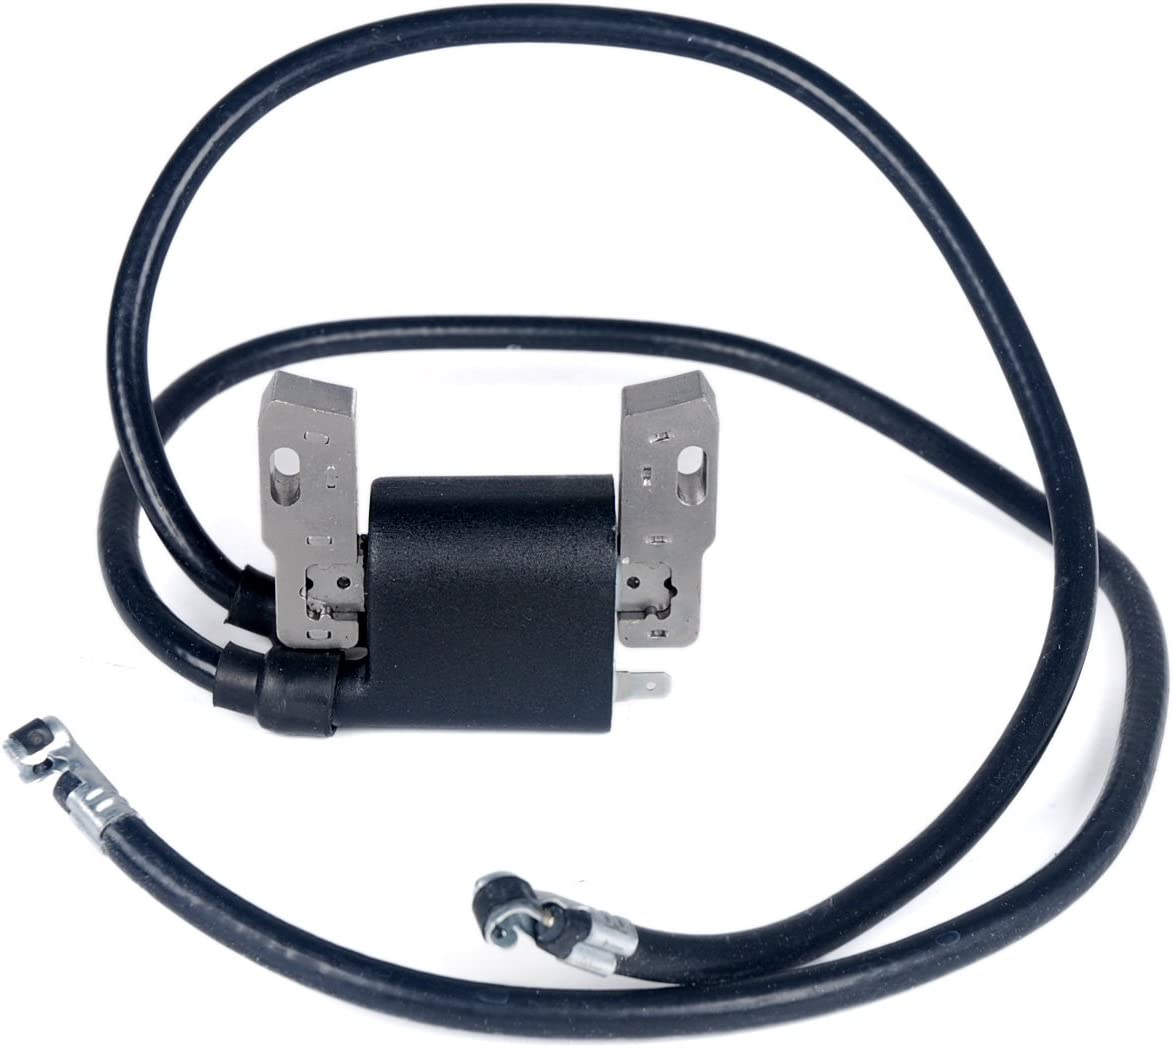 HIFROM Replacement Ignition Coil Replacement for Armature Magneto 460707 460777 461707